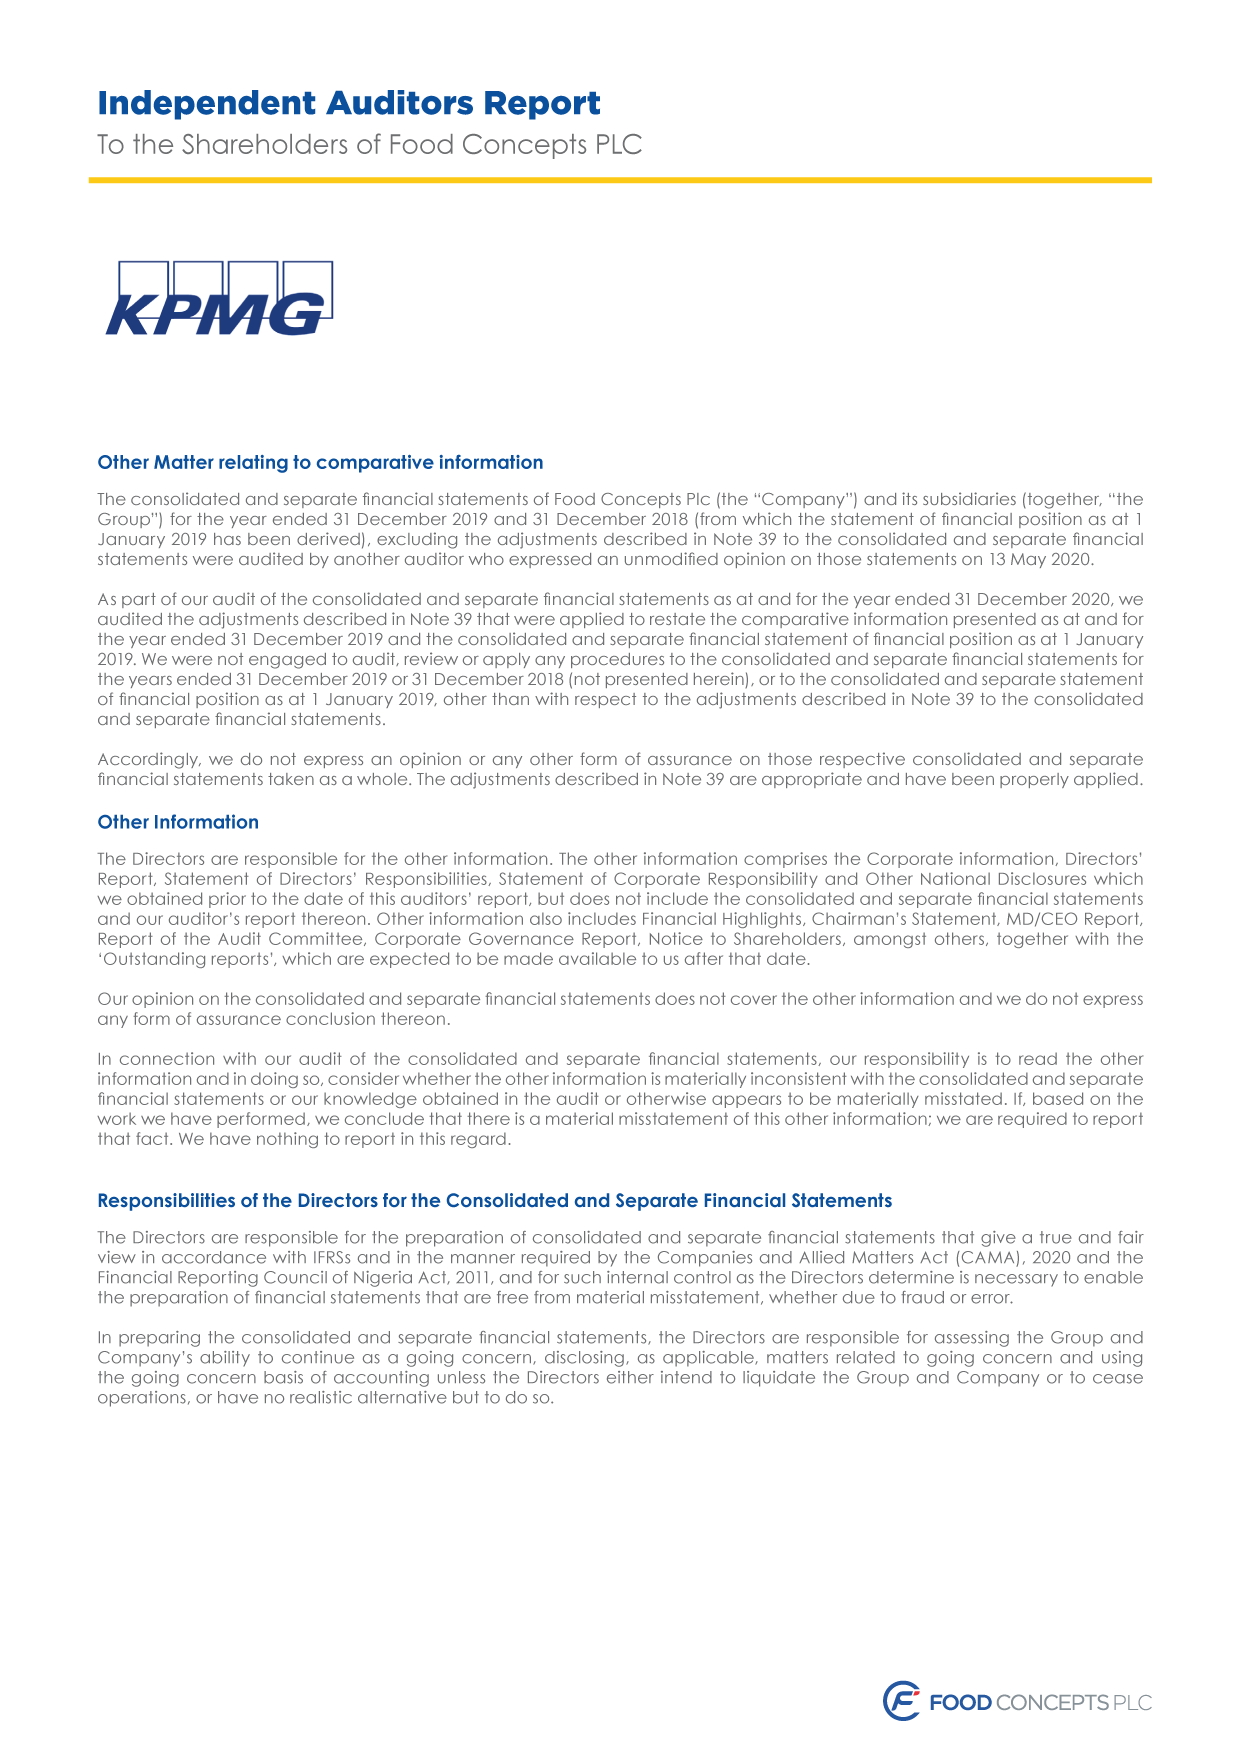 Food Concepts - Independent Auditors Report - Page 3